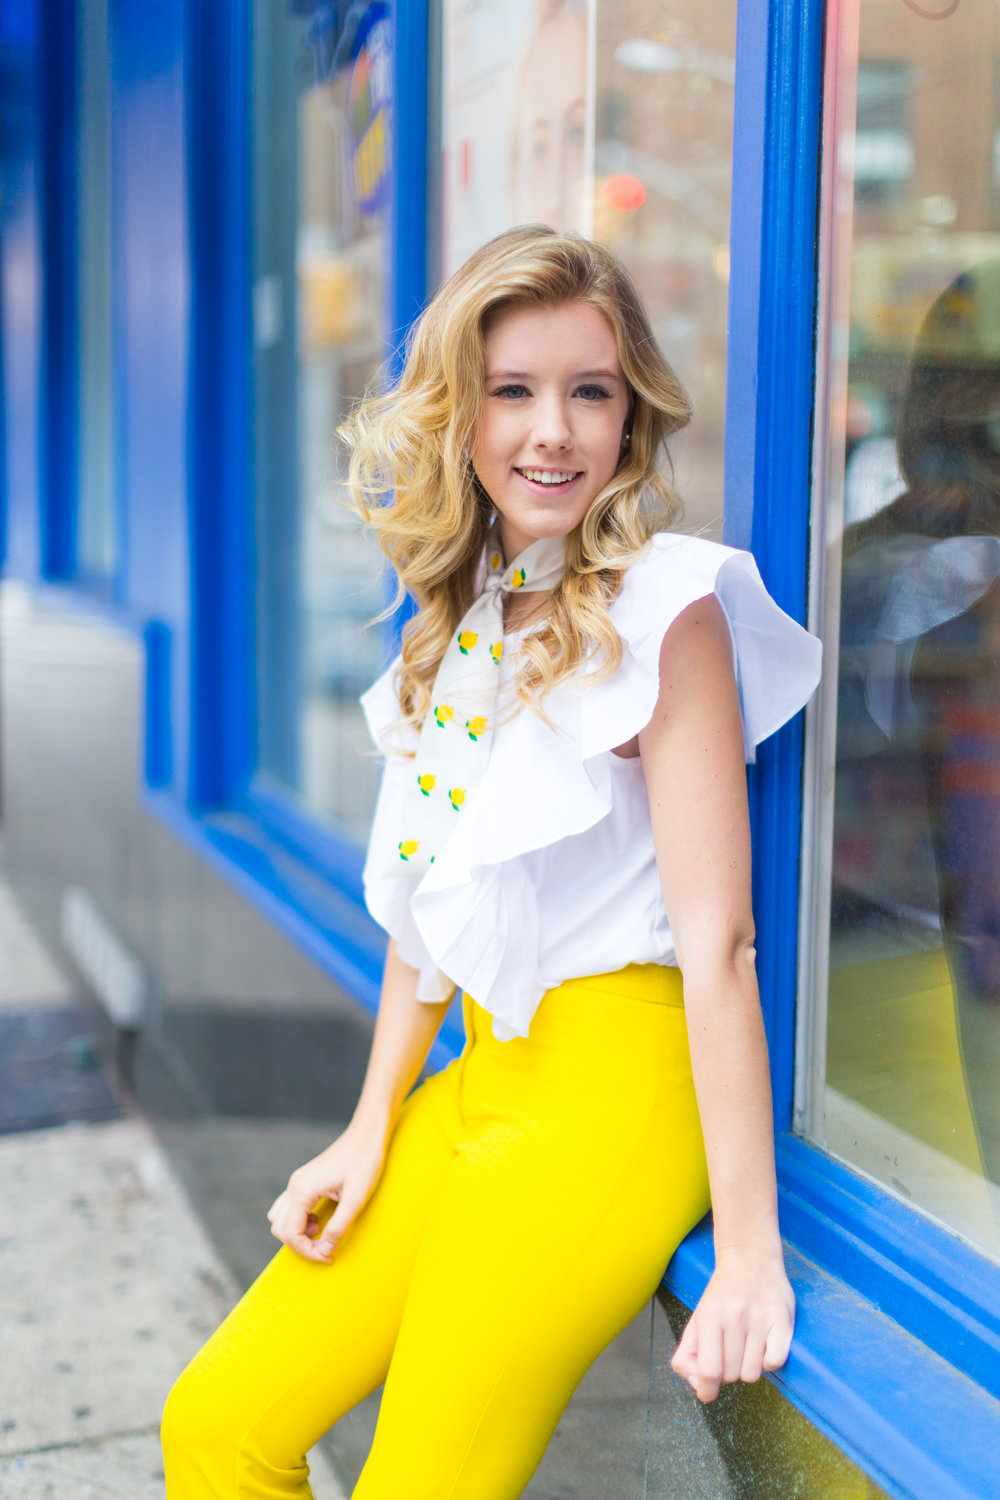 NYC Summer Yellow Lemon Print Outfit-13.jpg